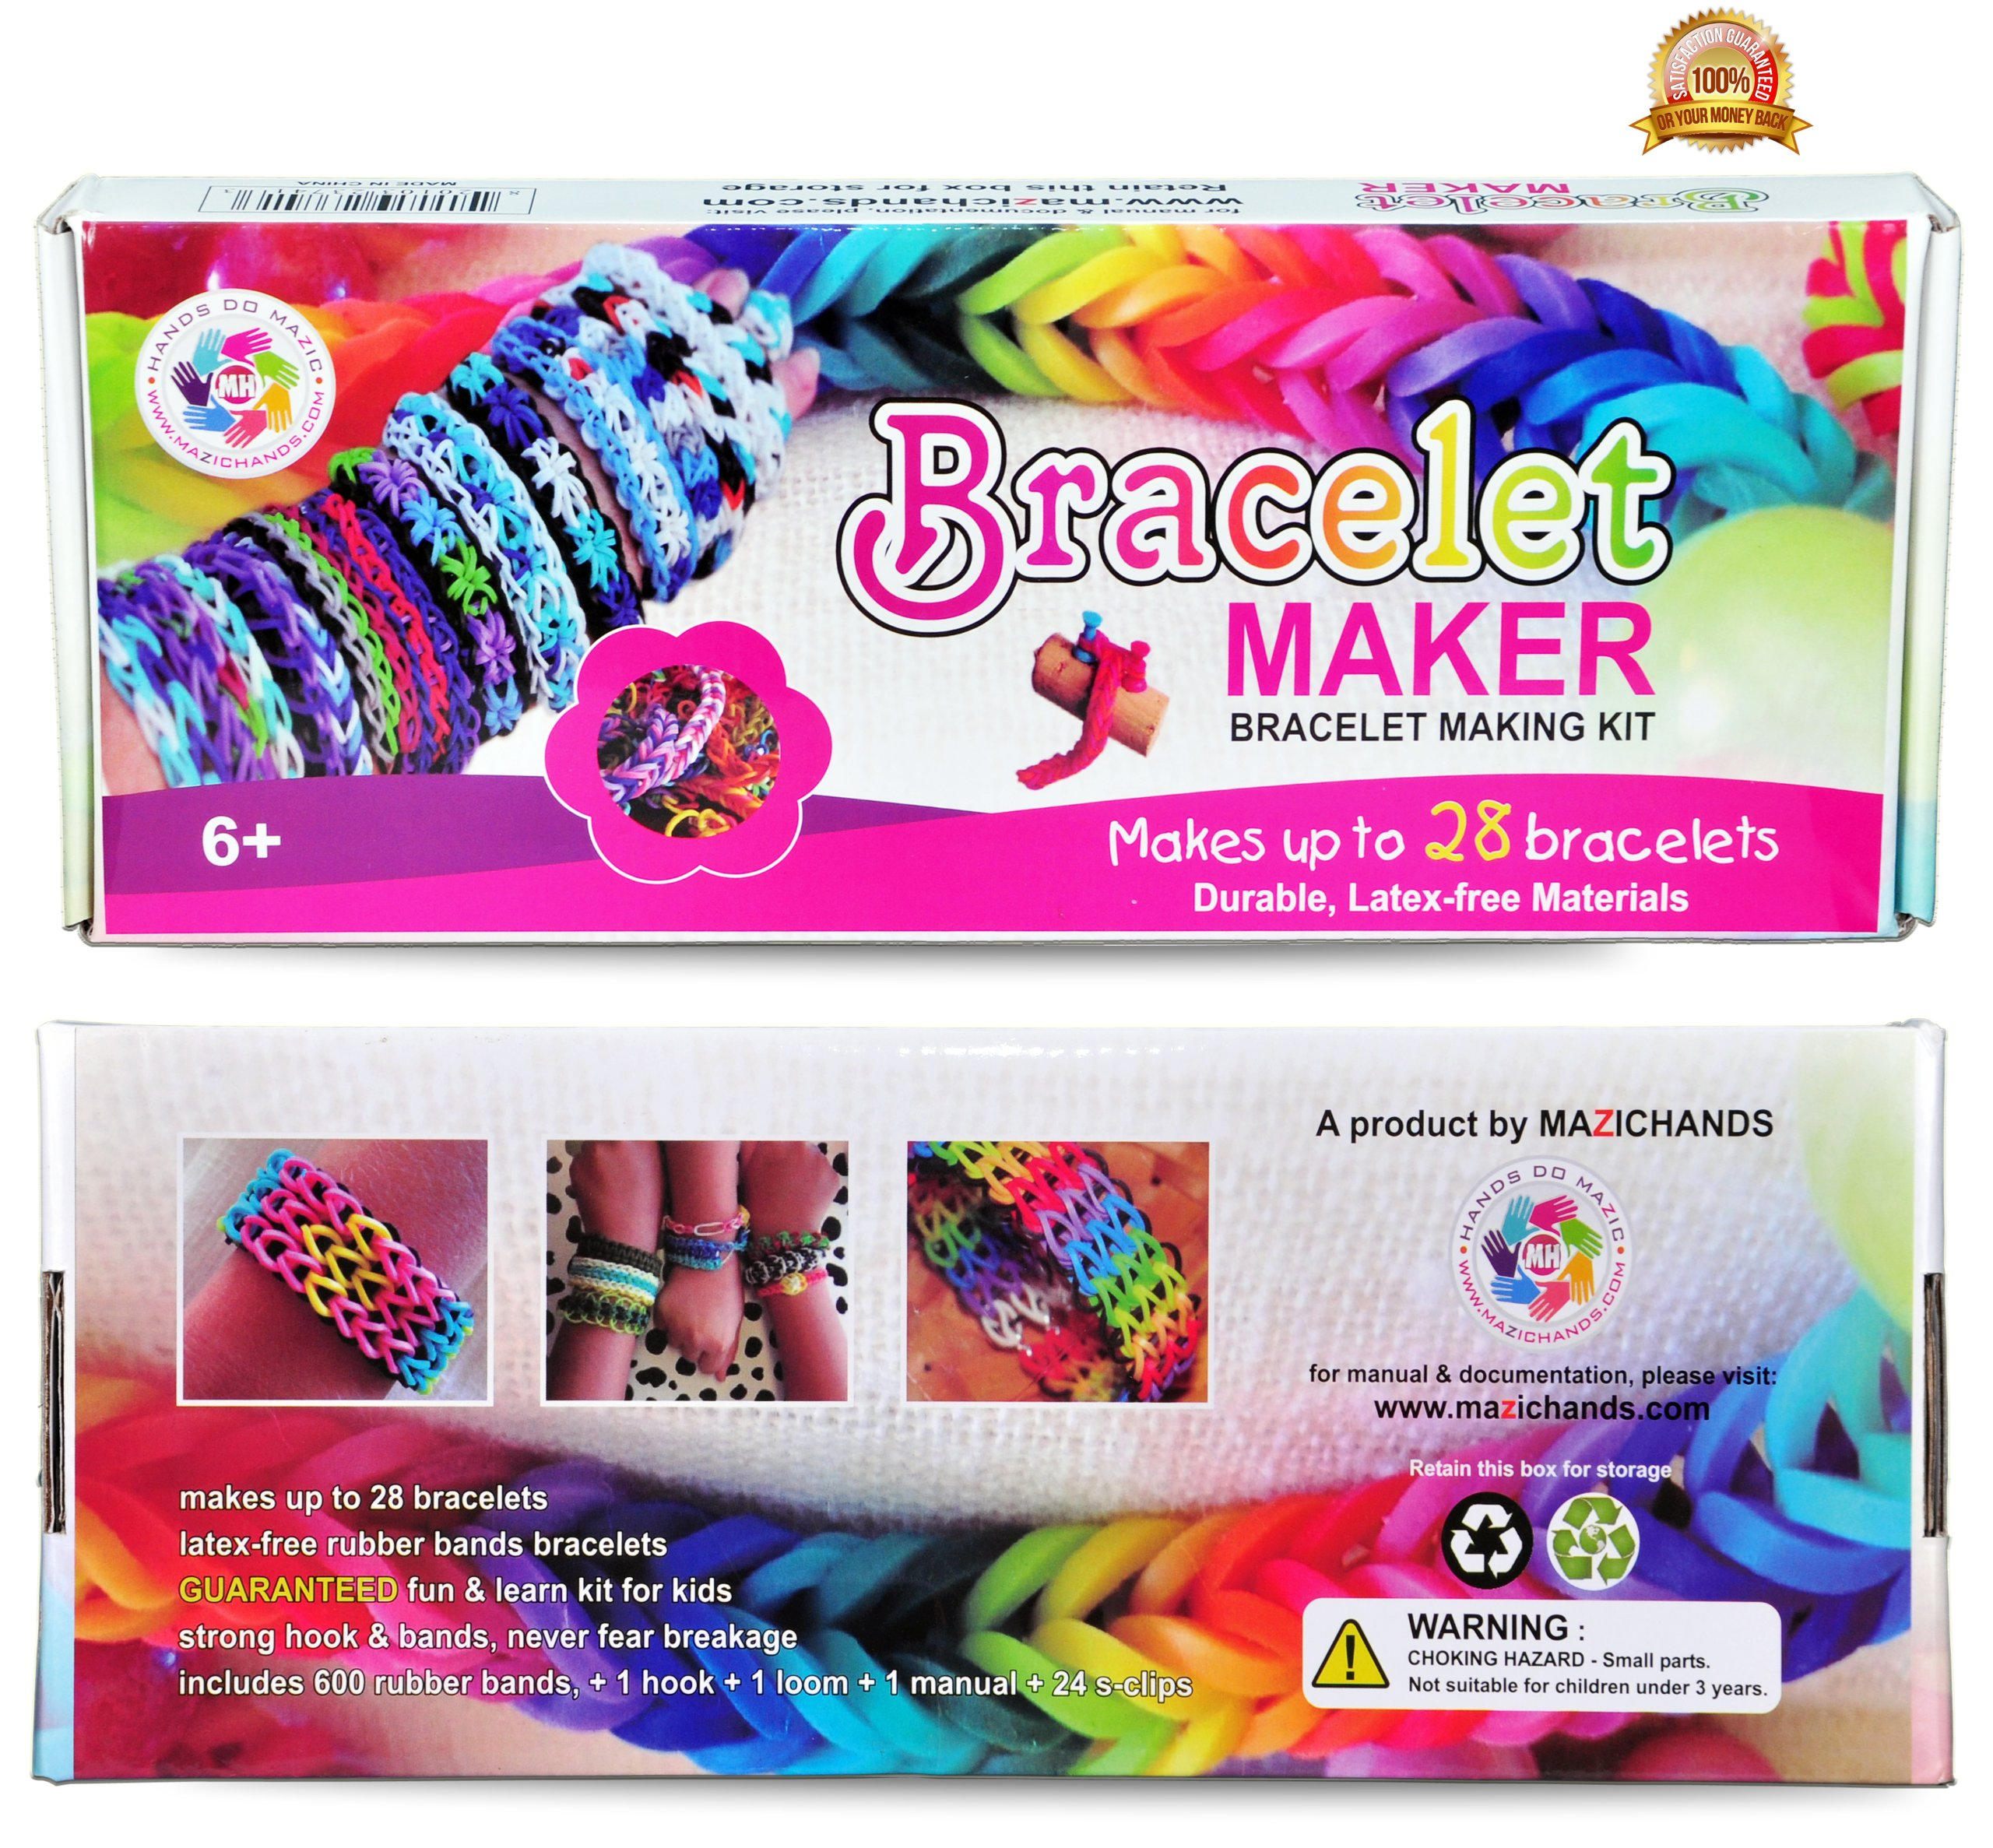 Boys arts and crafts - Arts And Crafts For Girls Best Birthday Gifts Toys Diy Kit For Girls Boys Above 6 Year Old Premium Bracelet Jewelry Making Kit Aka Friendship Bracelet